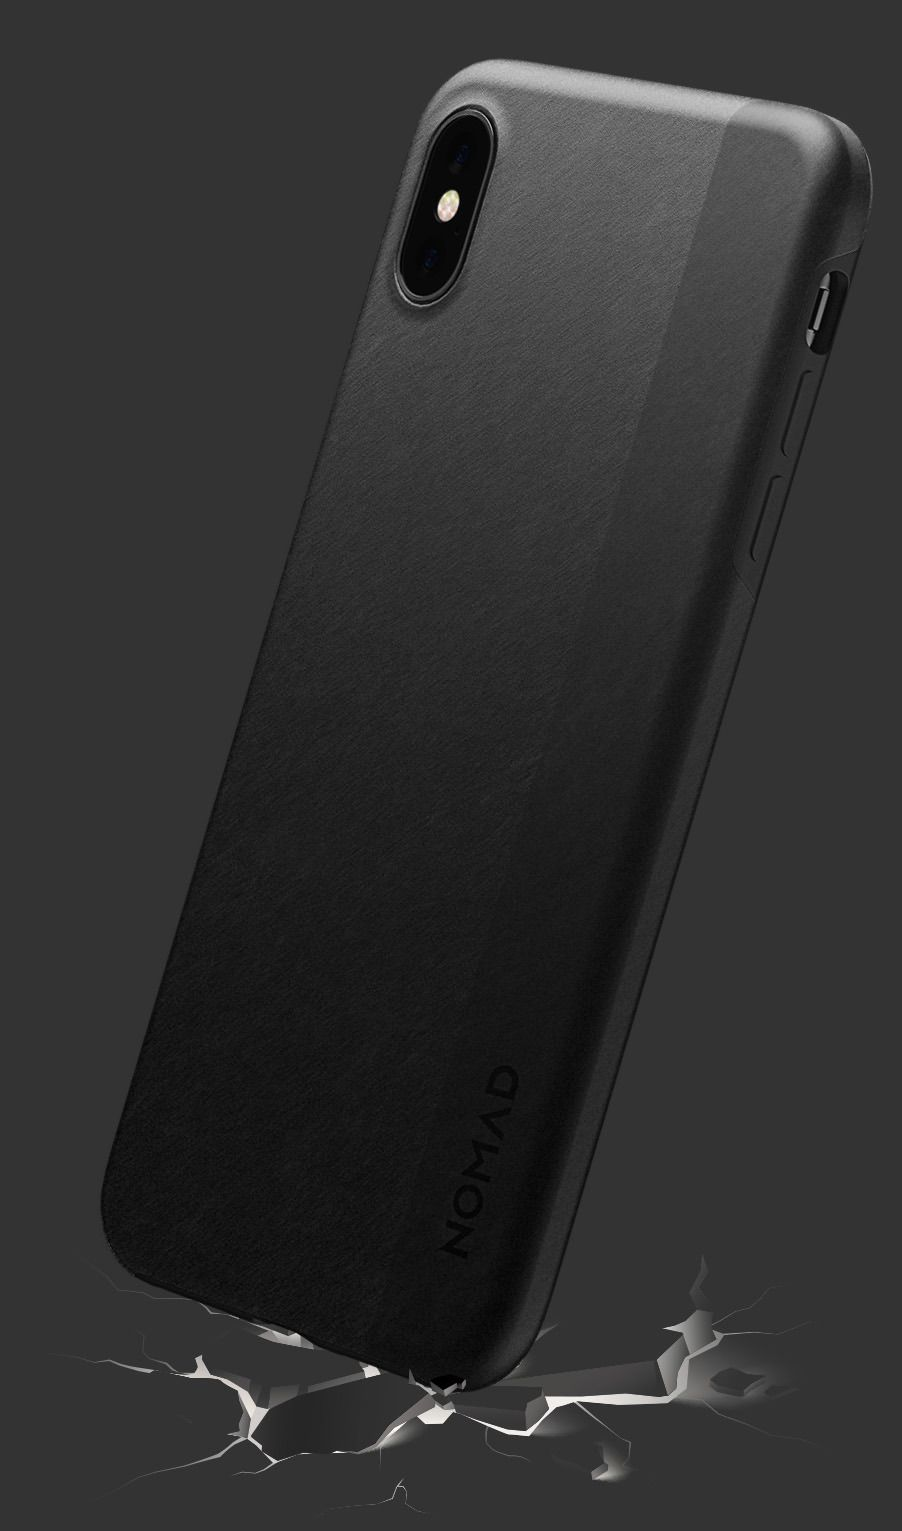 Nomad carbon case for iphone xs max with images